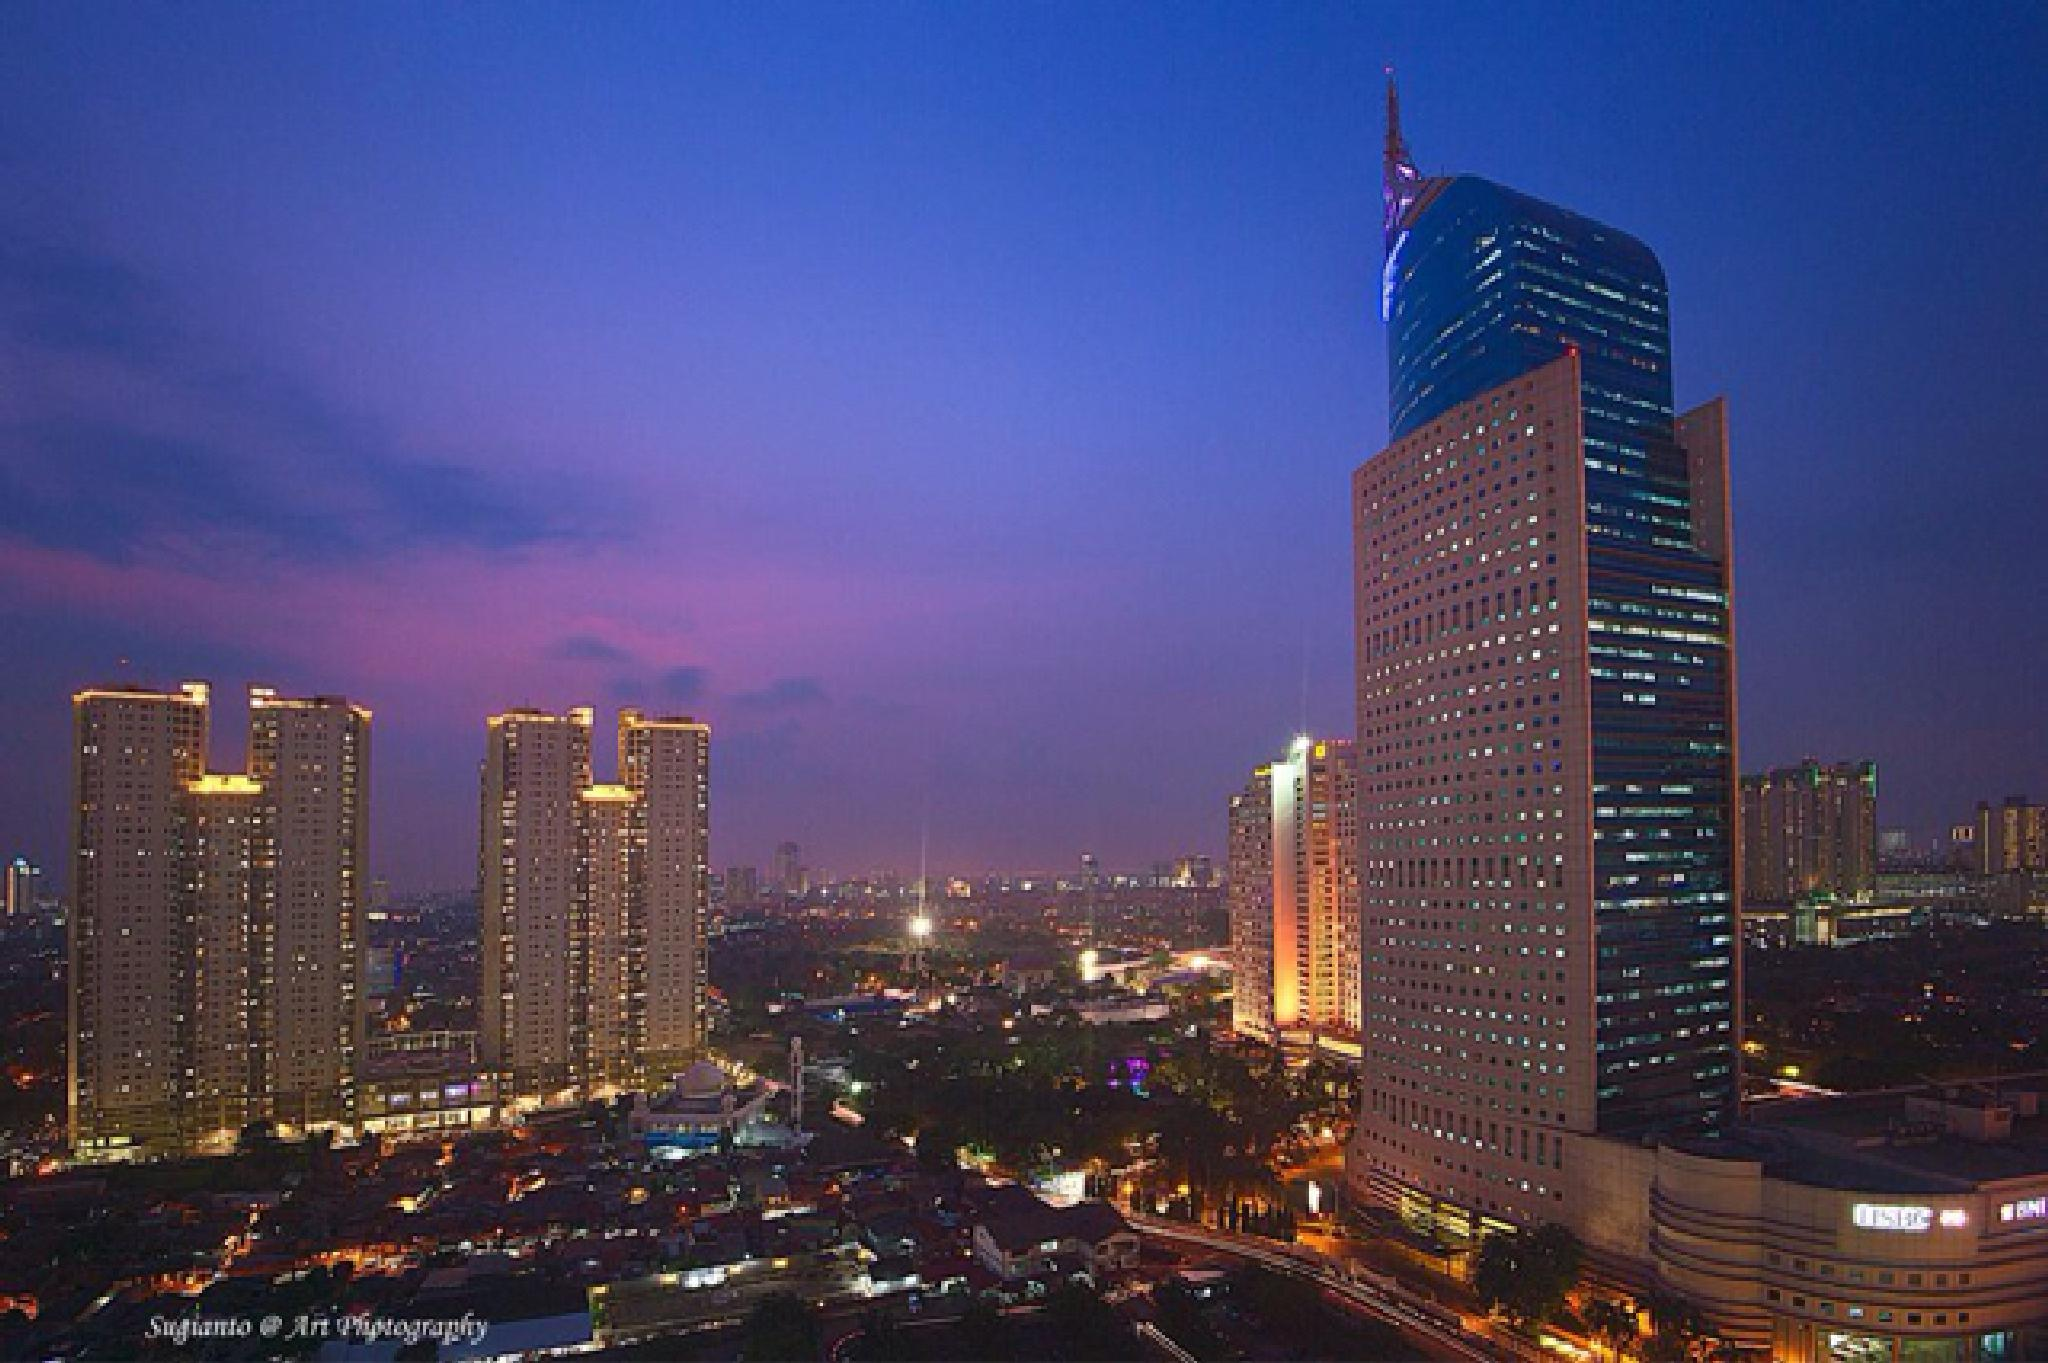 IMG_2067 by Sugianto